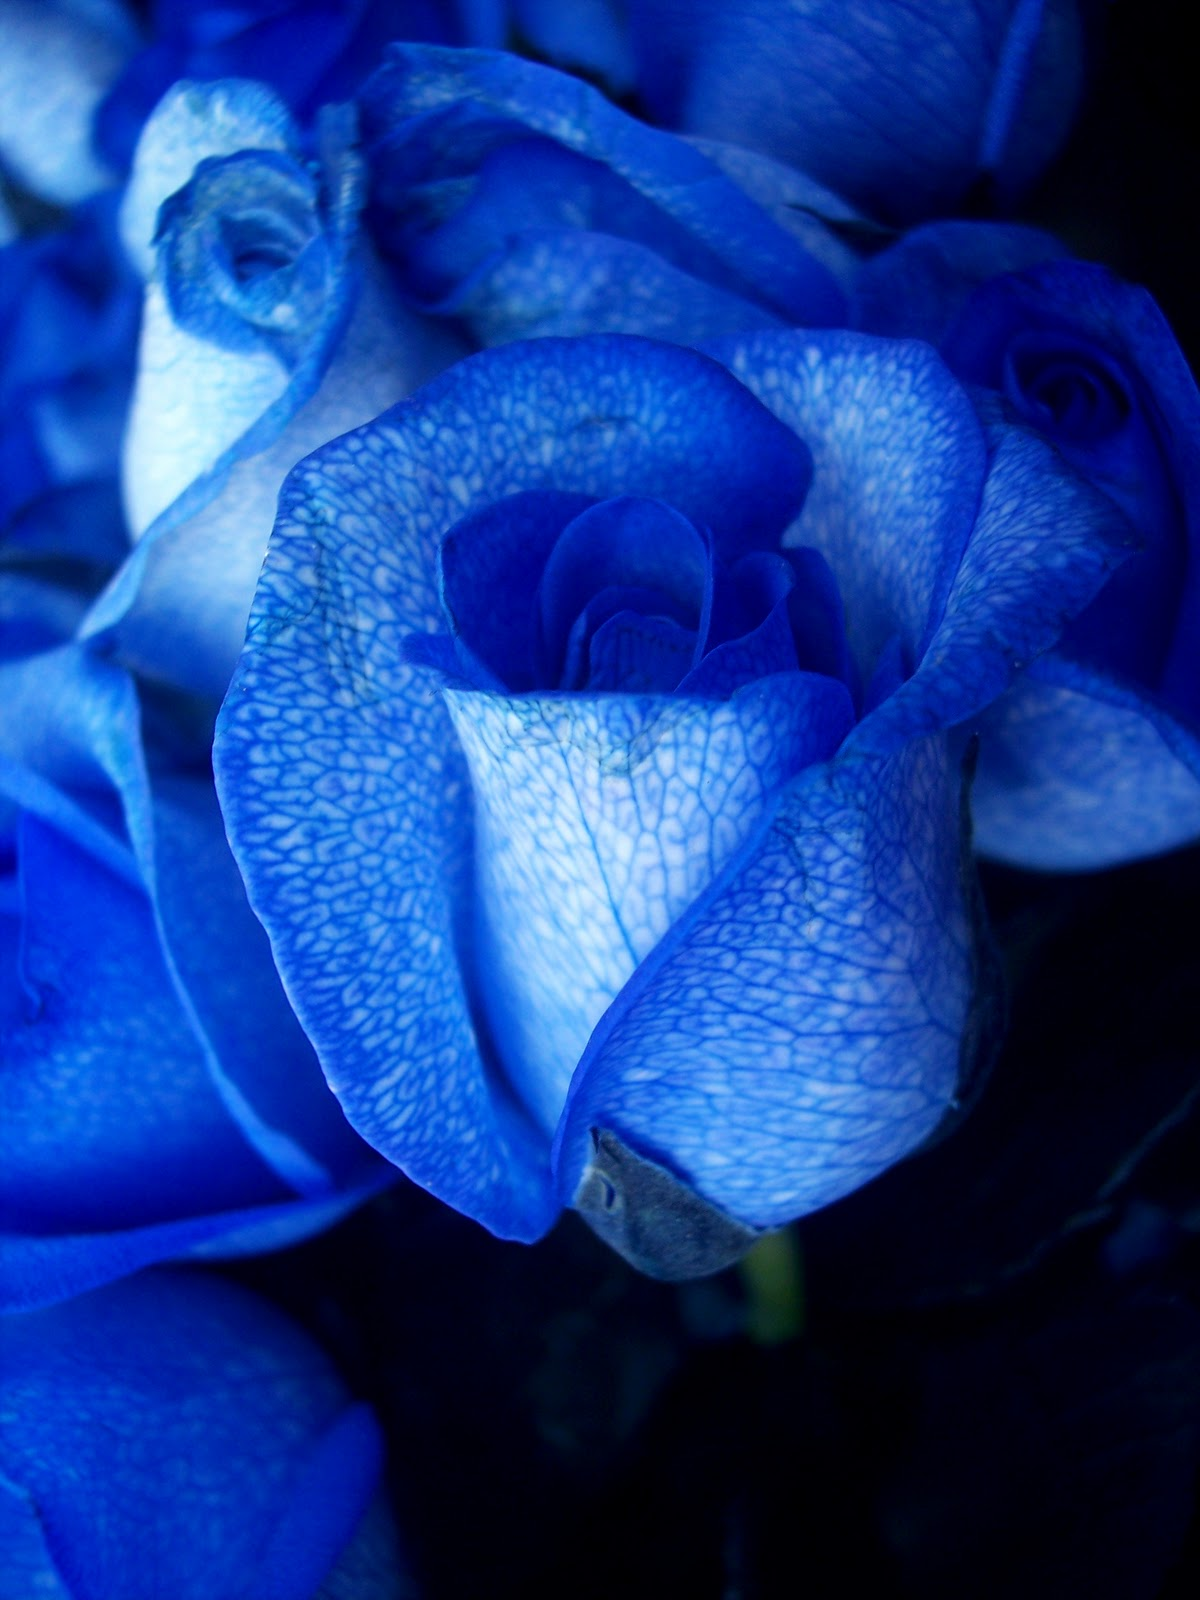 Blue Rose Flowers   Flower HD Wallpapers, Images, PIctures ...